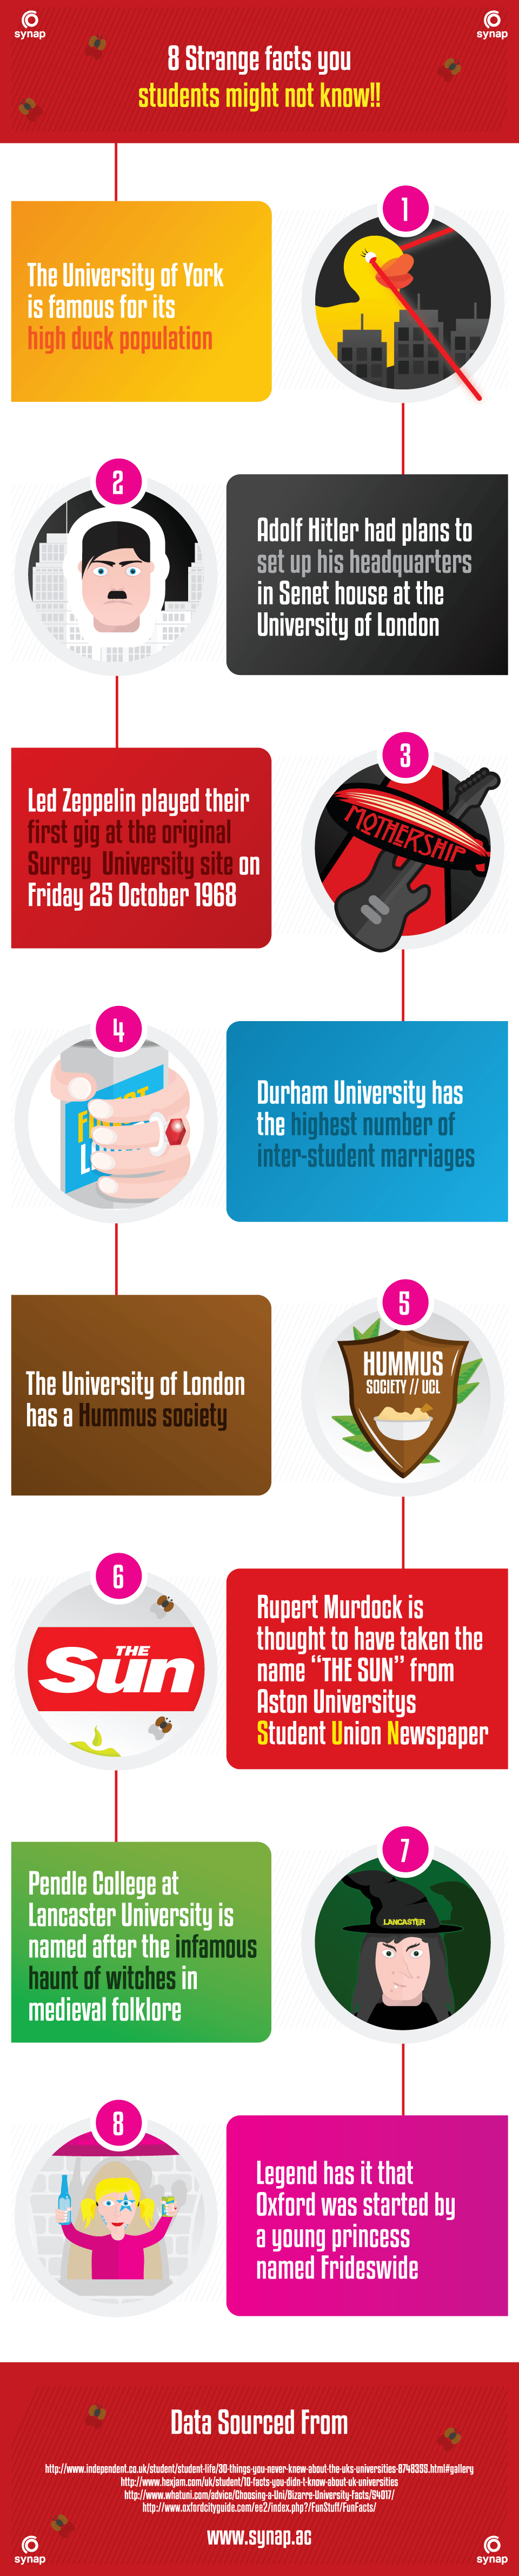 Strange Facts Students Might Not Know Infographic